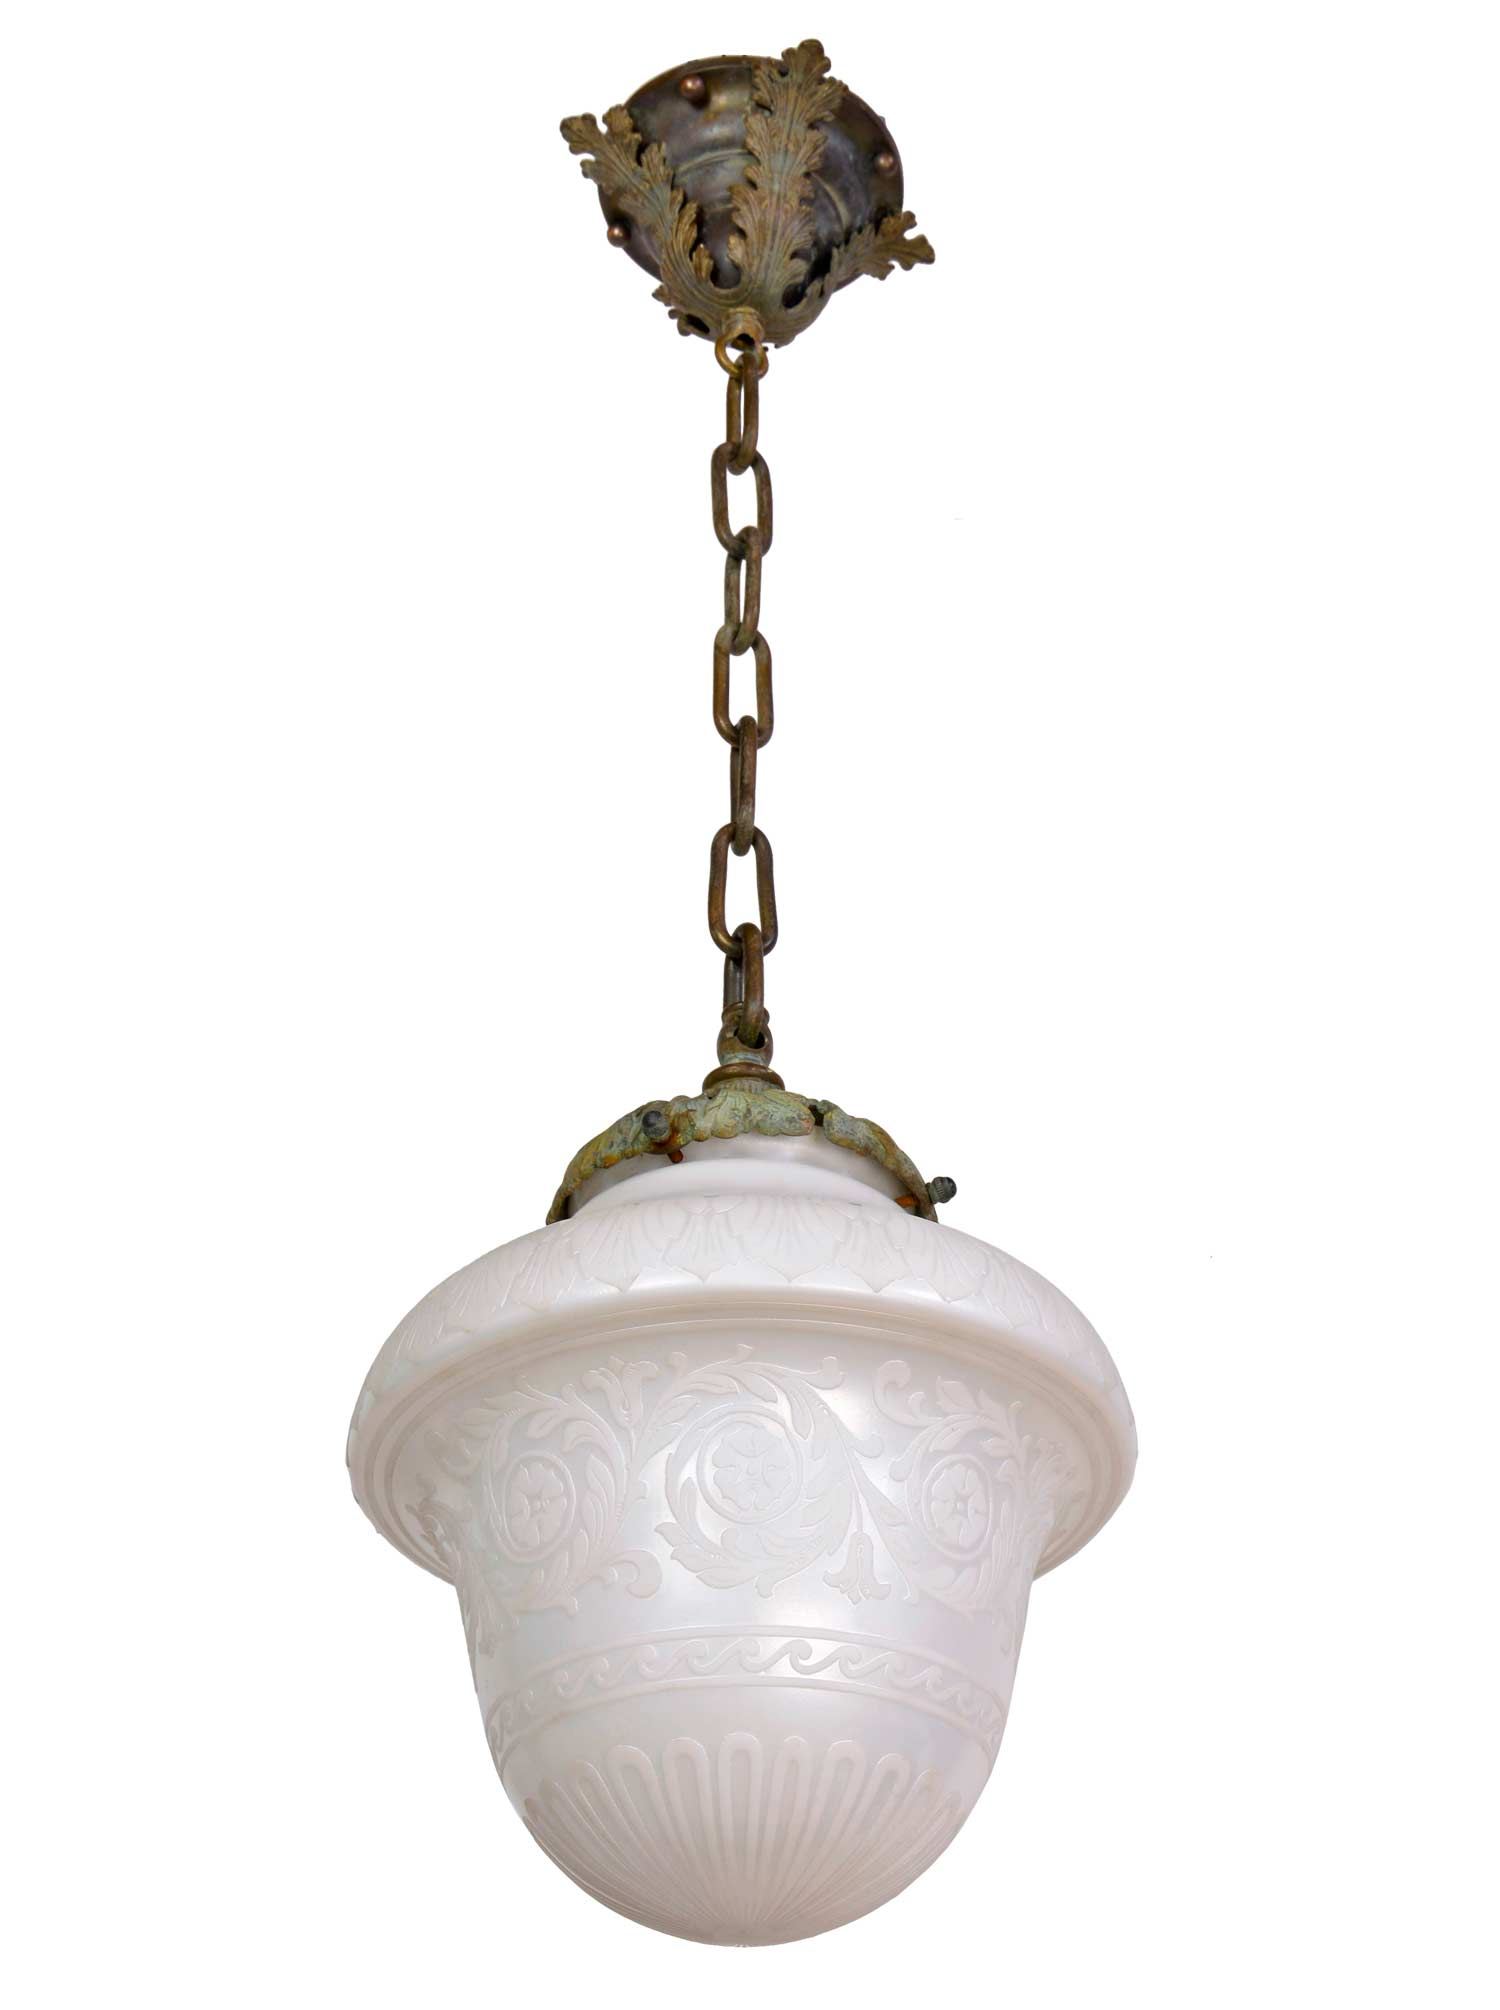 46129-decorative-floral-pendant-with-deep-etched-steuben-shade-angle.jpg